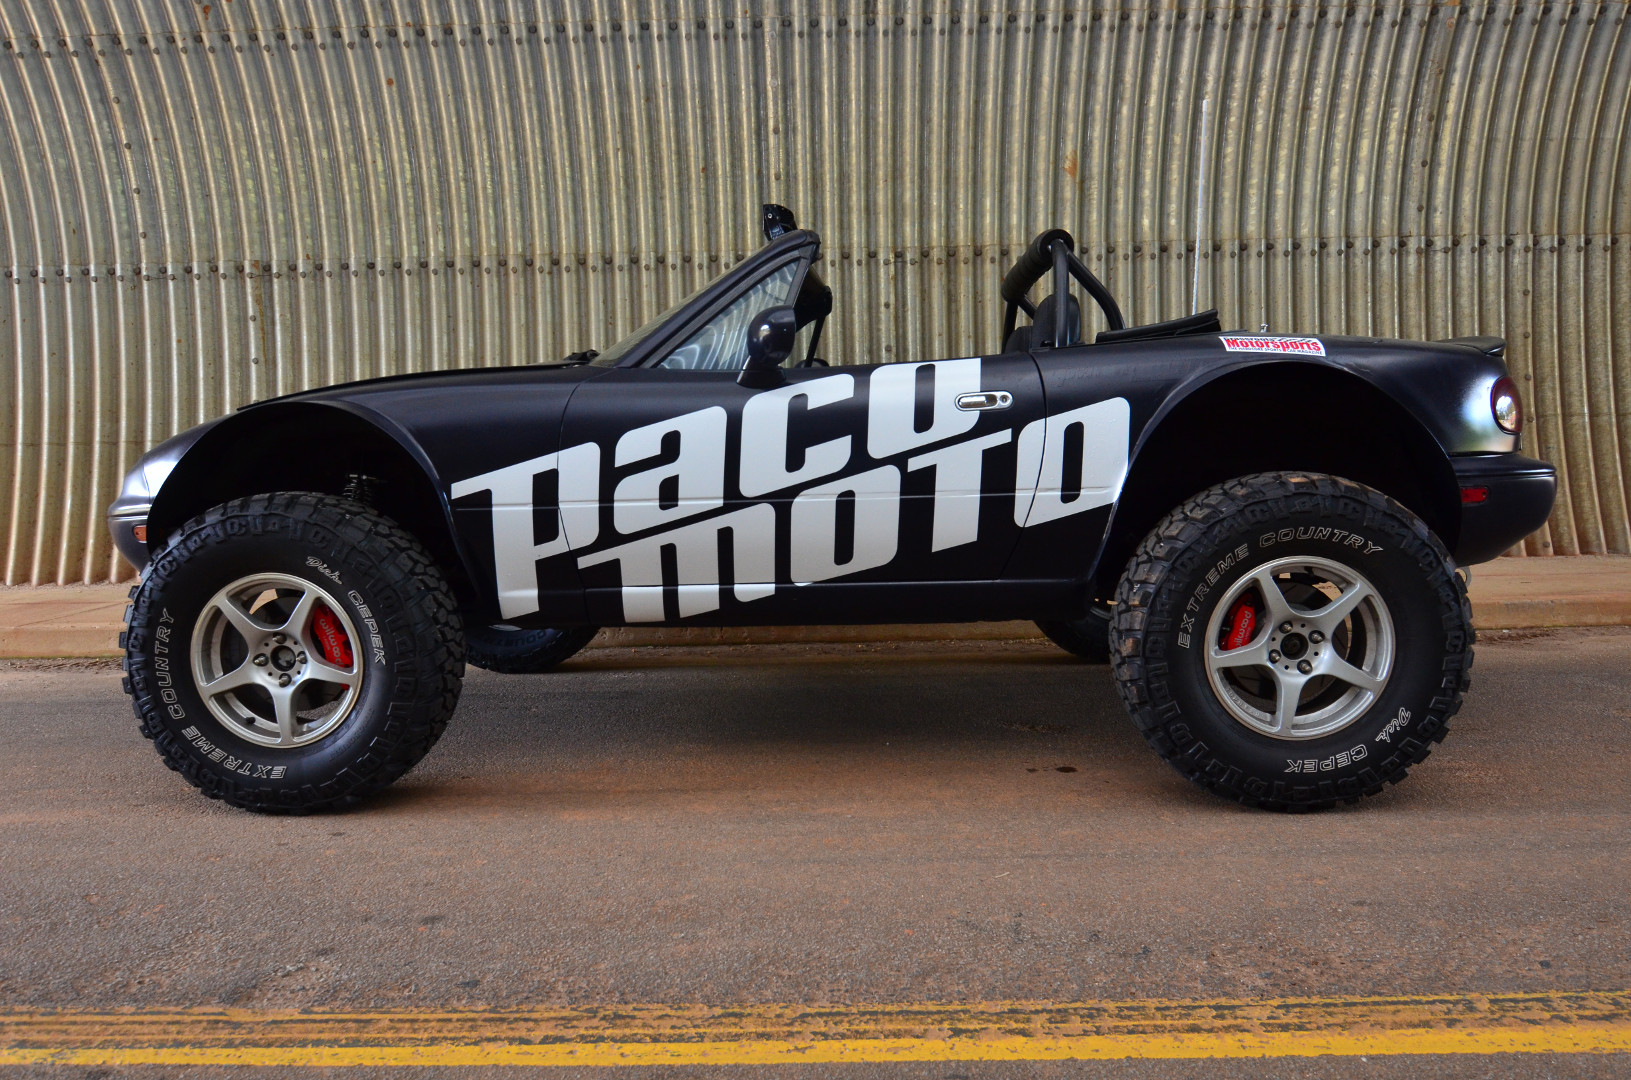 Offroadster | Paco Motorsports